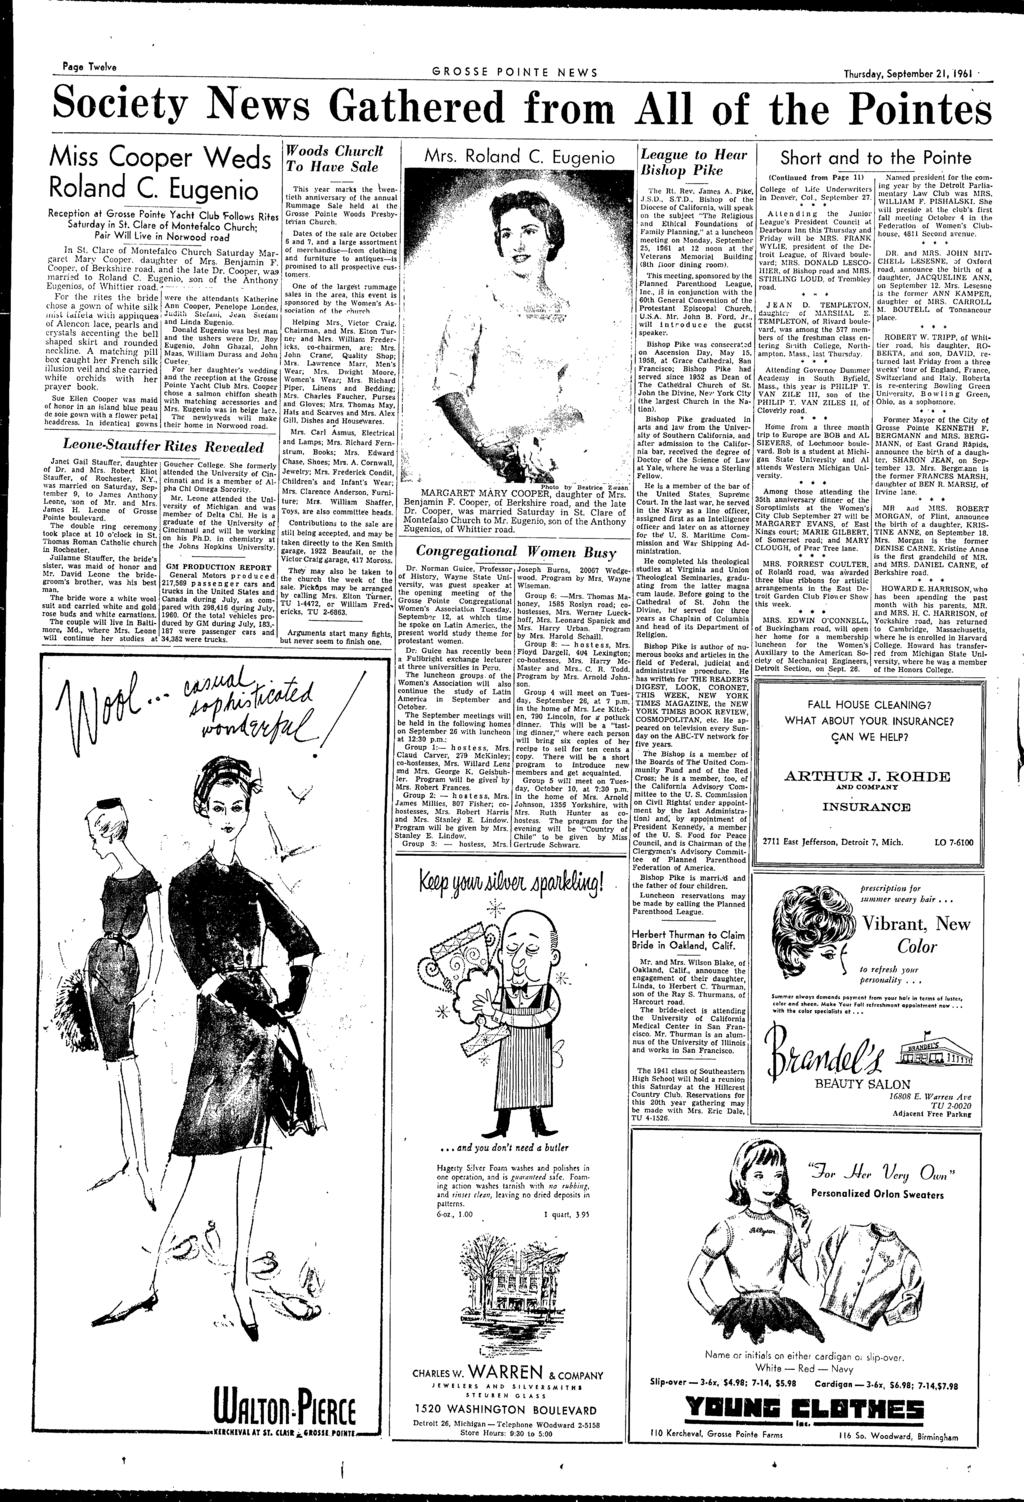 313ae4655 Complete News Coverage of All the Pointes GROSSE POINTE, MICHIGAN ...